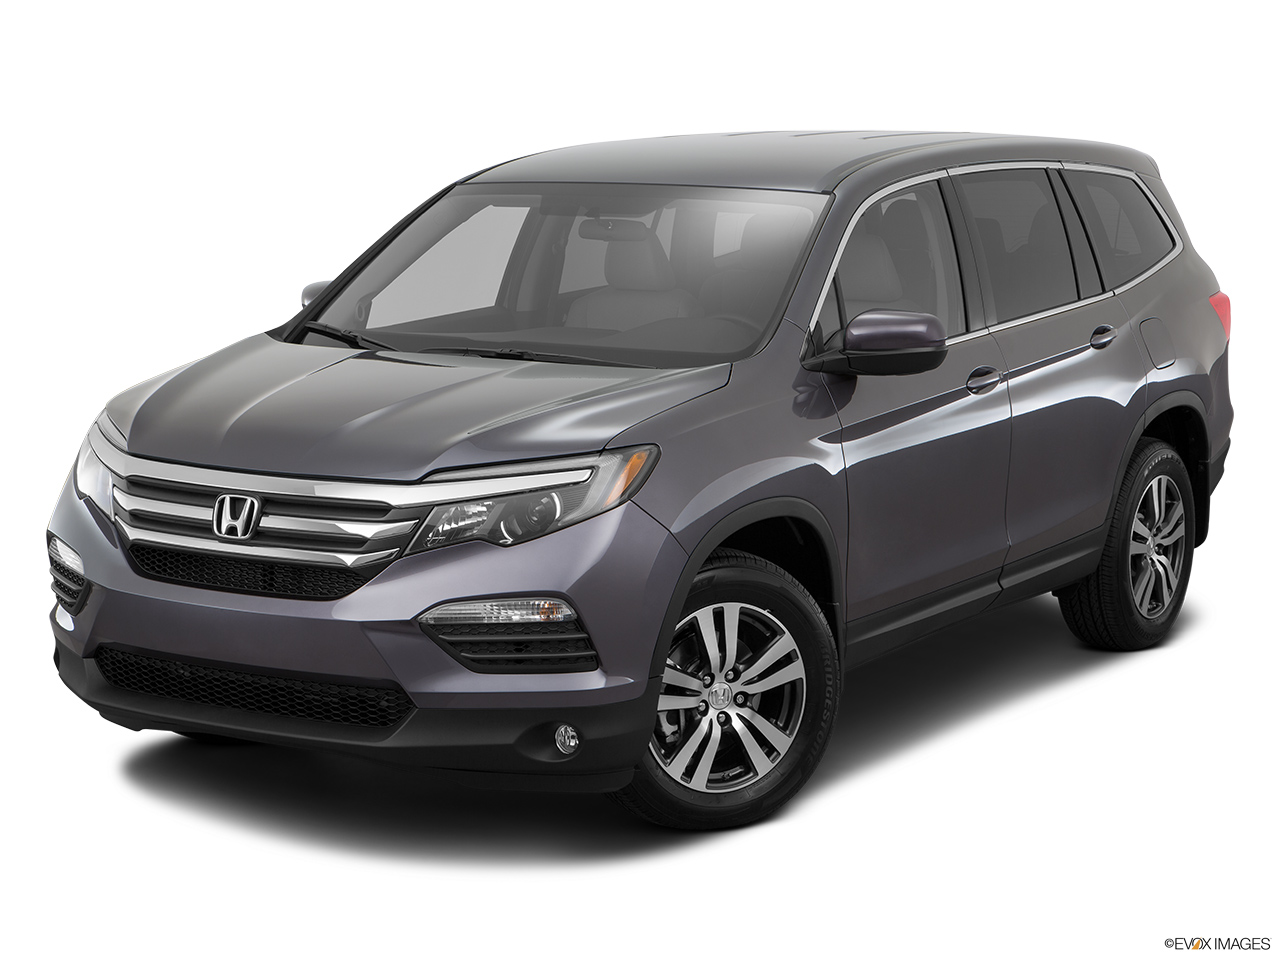 2016 Honda Pilot Prices in Oman, Gulf Specs & Reviews for Muscat | YallaMotor